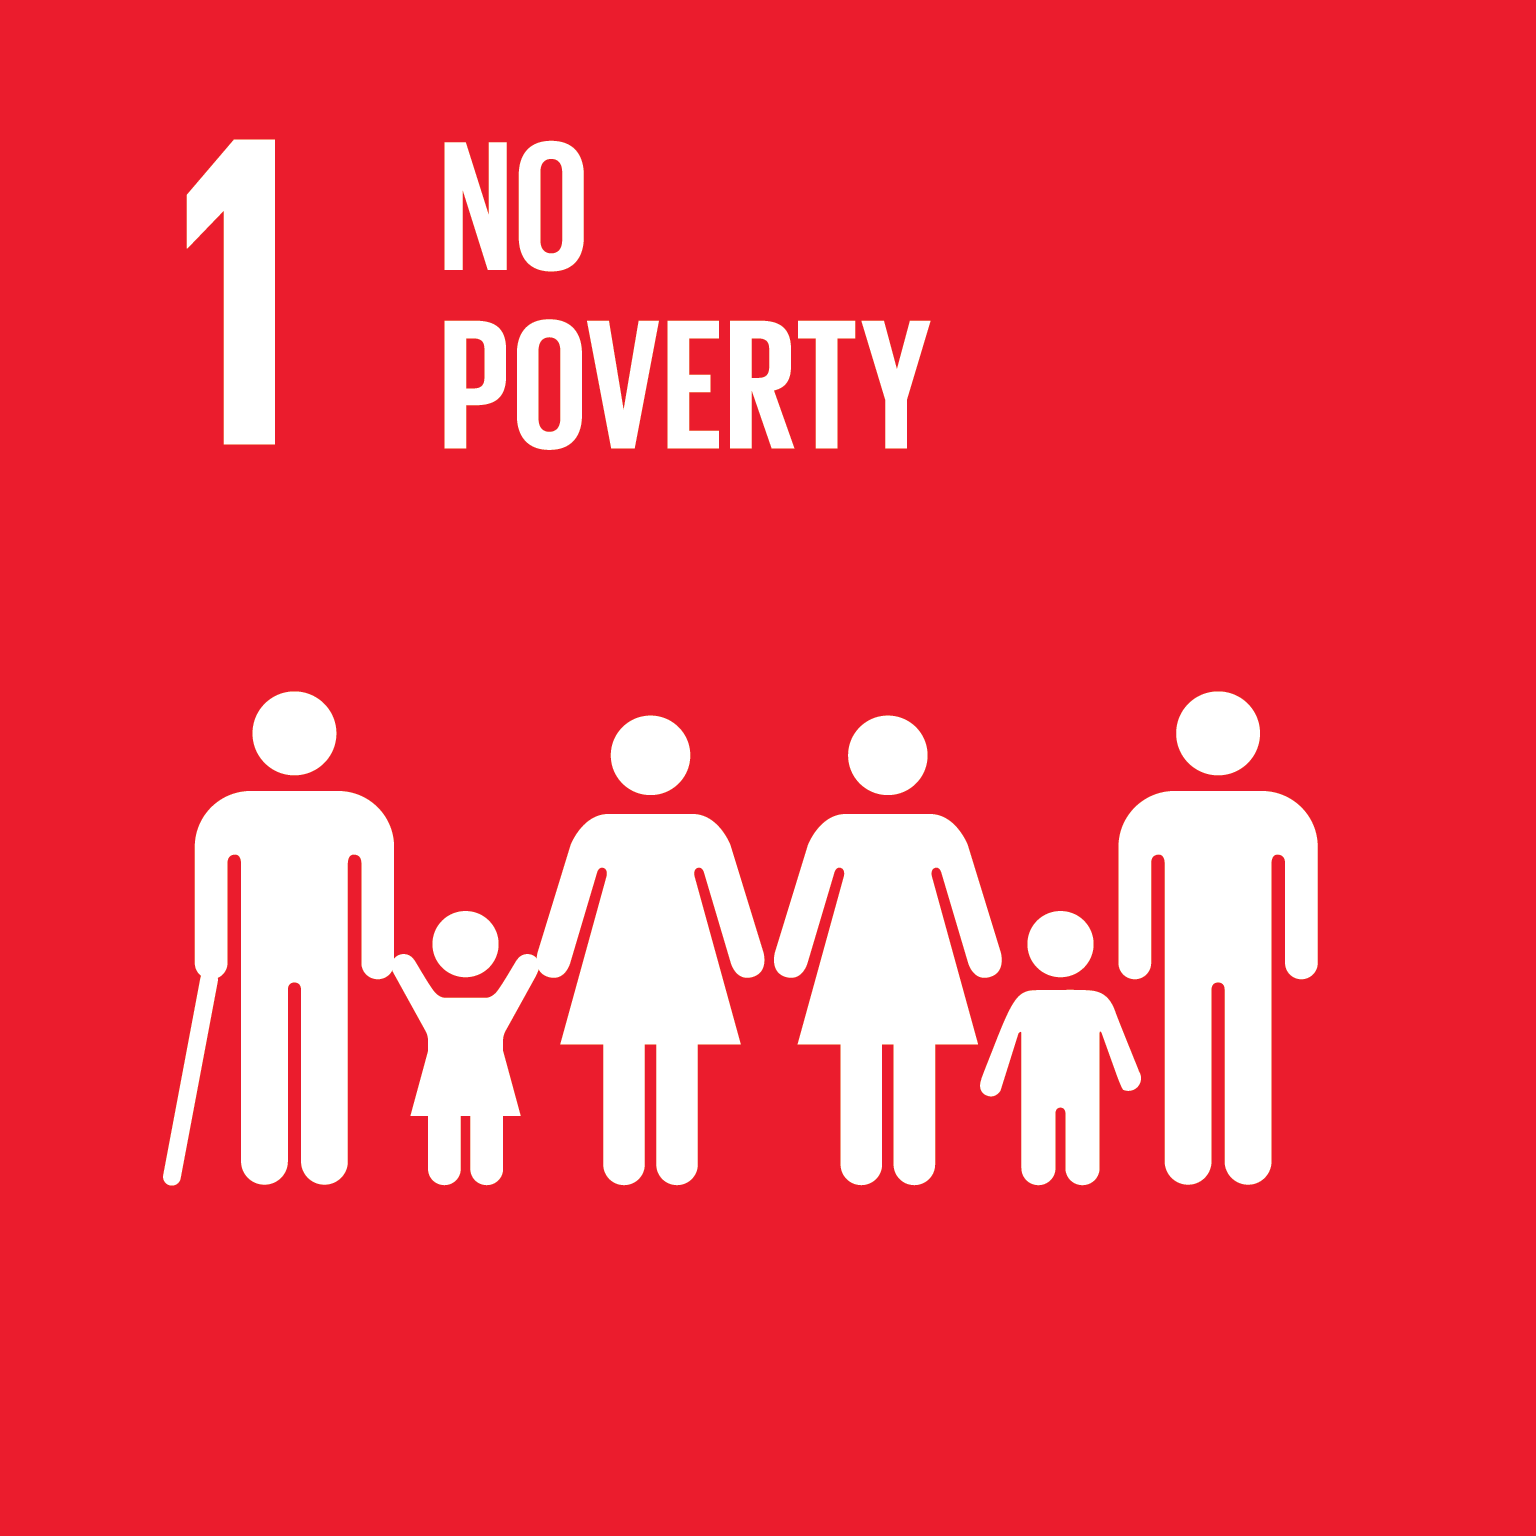 Sustainable Development Goal 1 icon